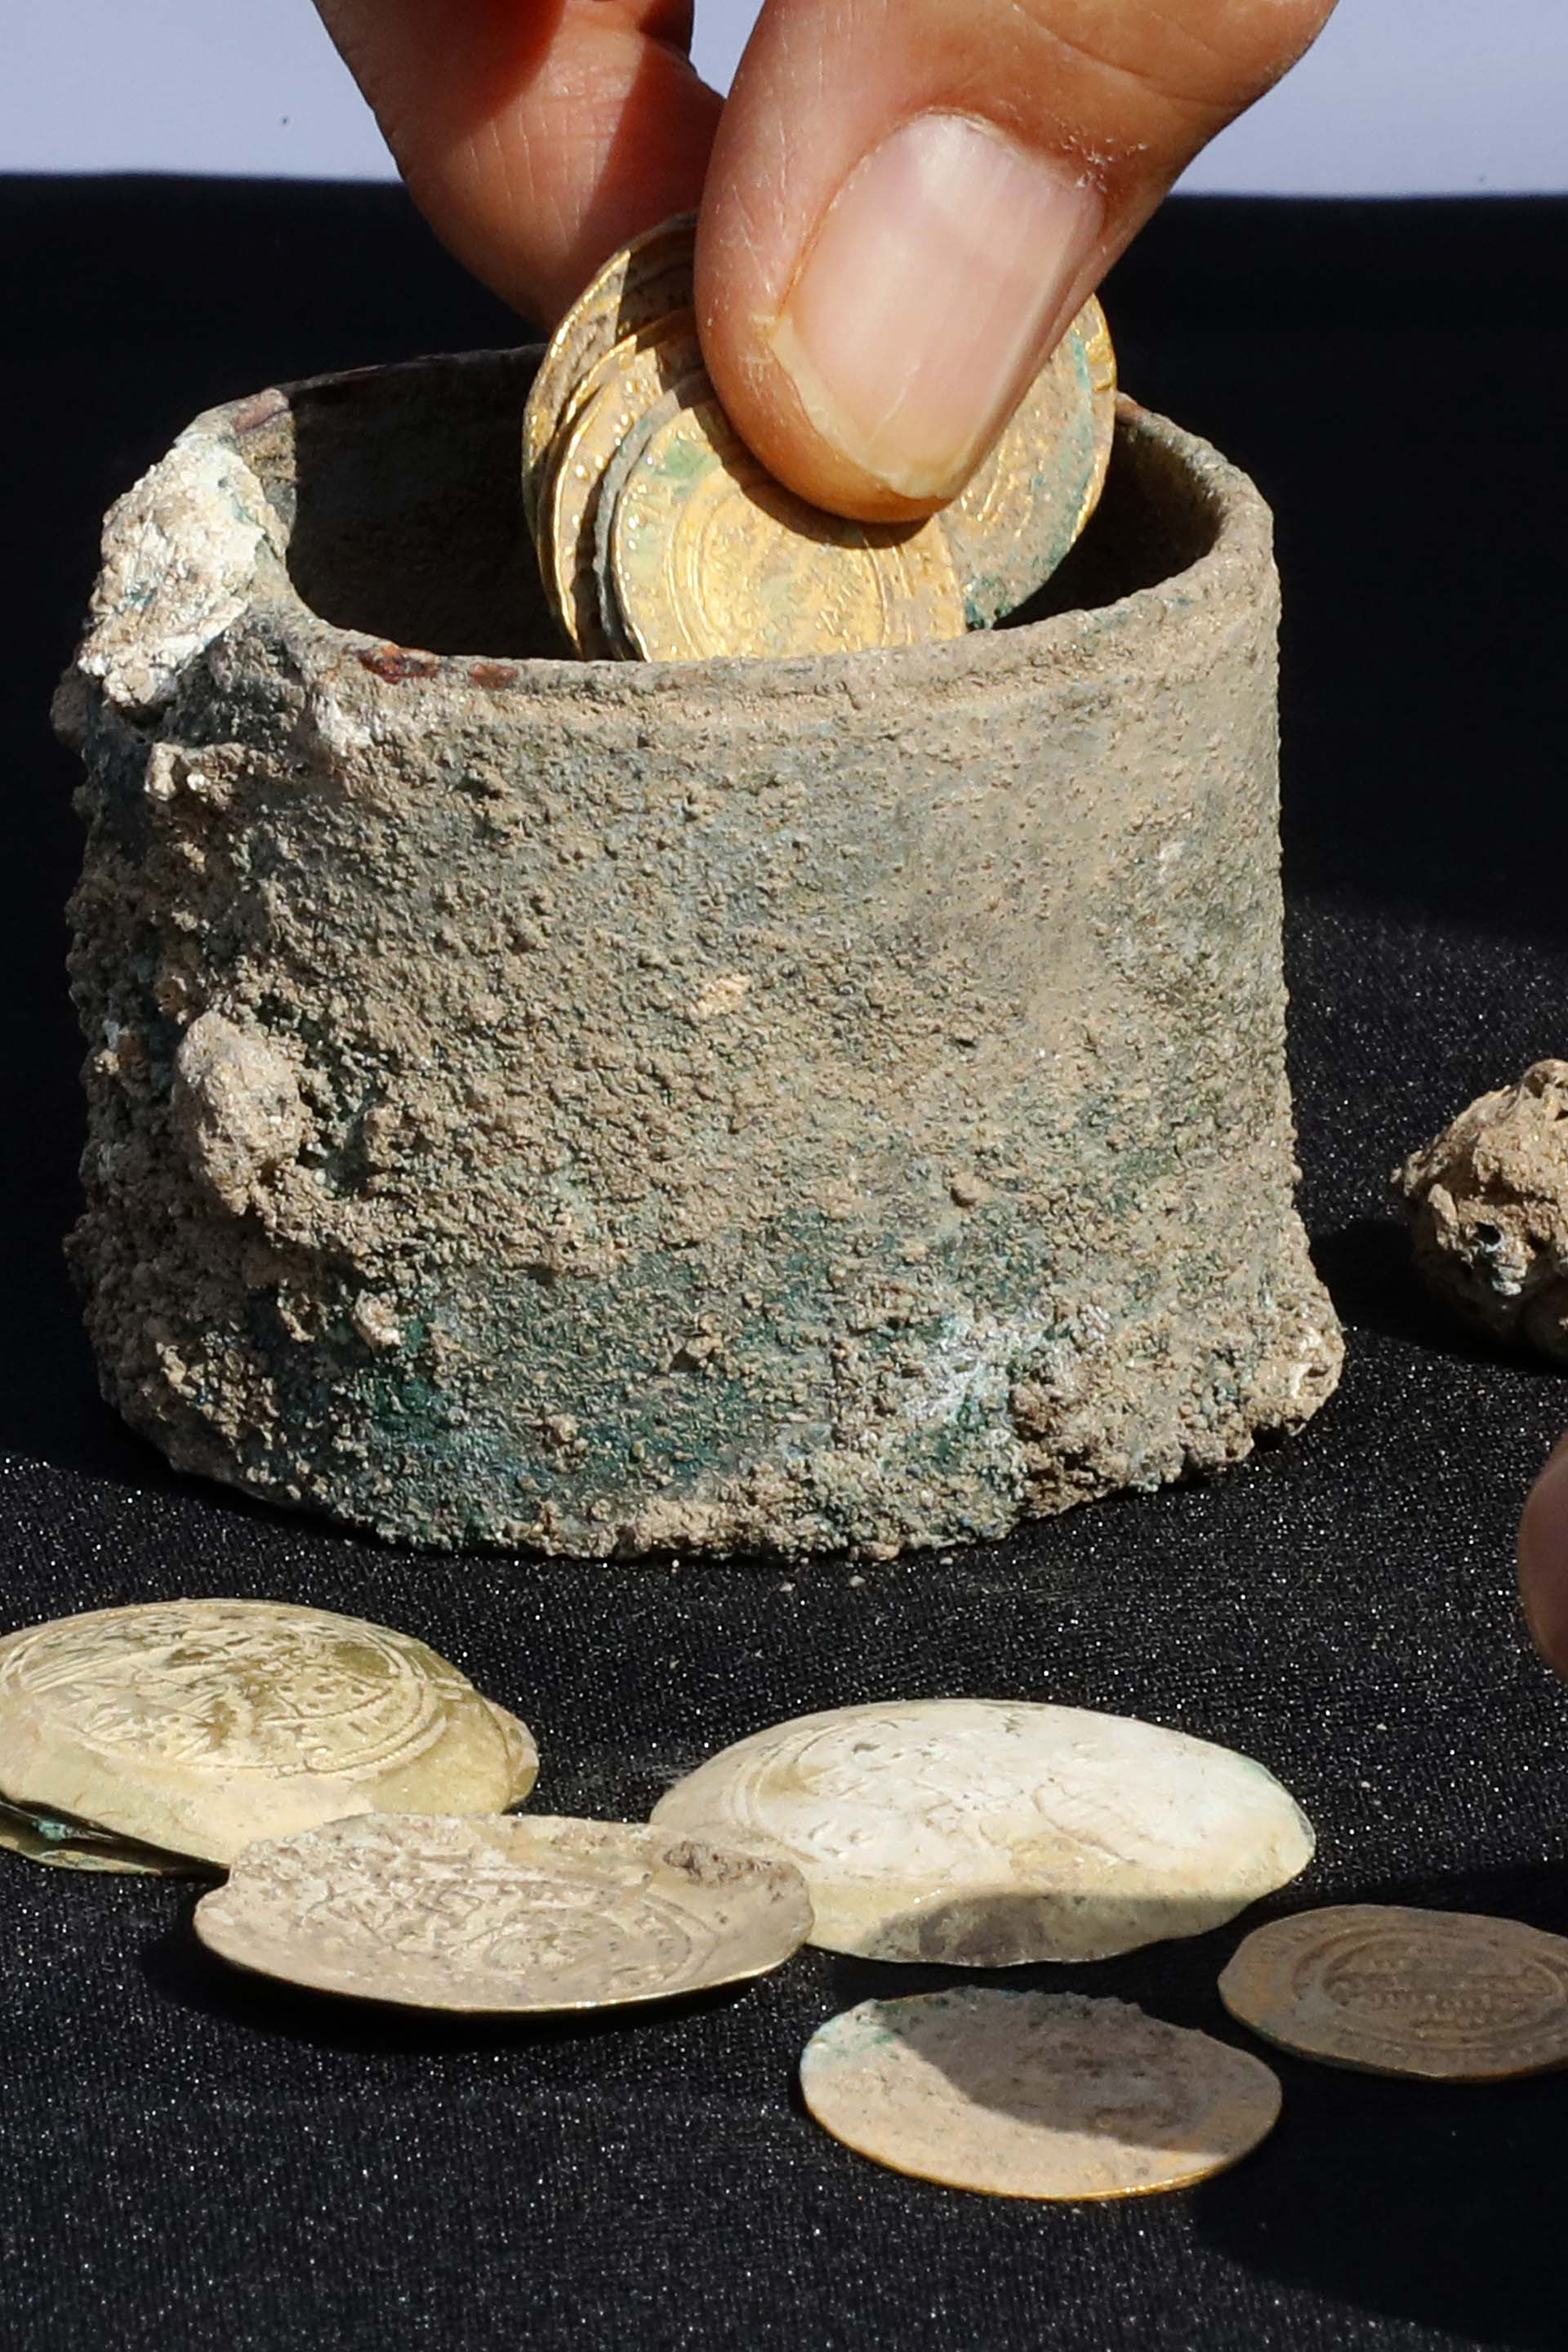 A picture taken on December 3, 2018, shows ancient gold coins and an earring recently uncovered at an excavation site in the Israeli Mediterranean town of Caesarea. – A treasure of 24 rare gold coins consisting of 18 Fatimid dinars, which were the standard local currency during that time (909-1171), as well as six are Byzantine coins, which include five dating to the era of Byzantine Emperor Michael VII Doukas (1071-1078), was recently uncovered in Caesarea. (Photo by JACK GUEZ / AFP)